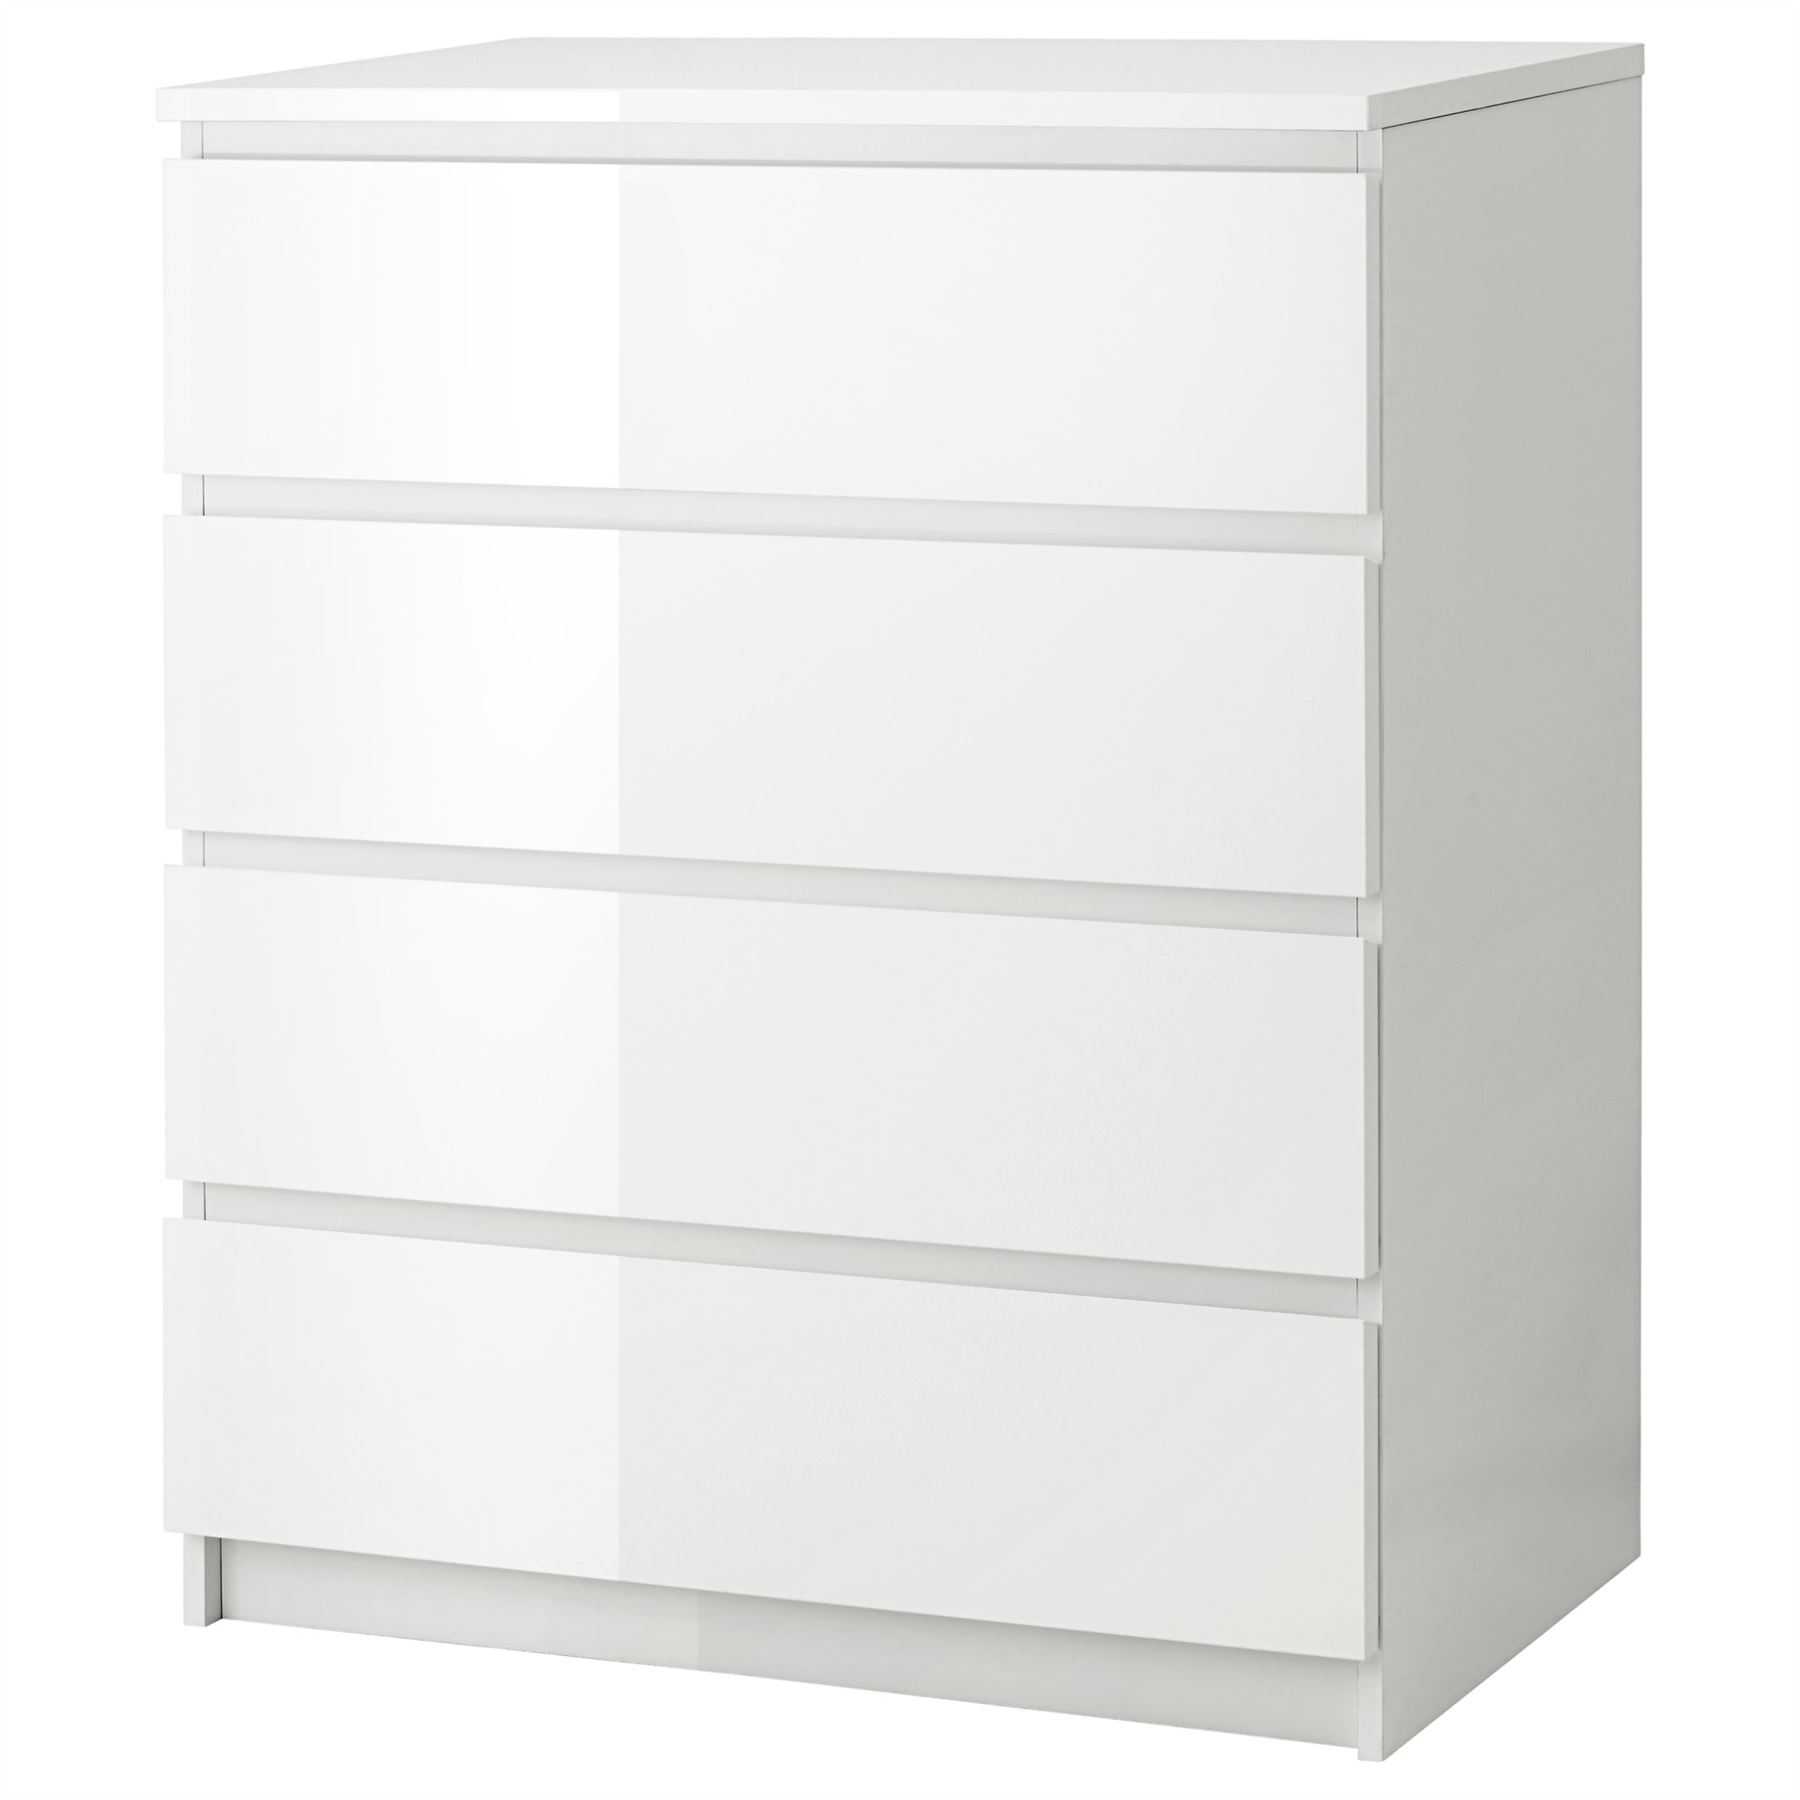 Jysk Badezimmermöbel Ikea Malm Chest Of 4 Drawers 80x100cm White High Gloss